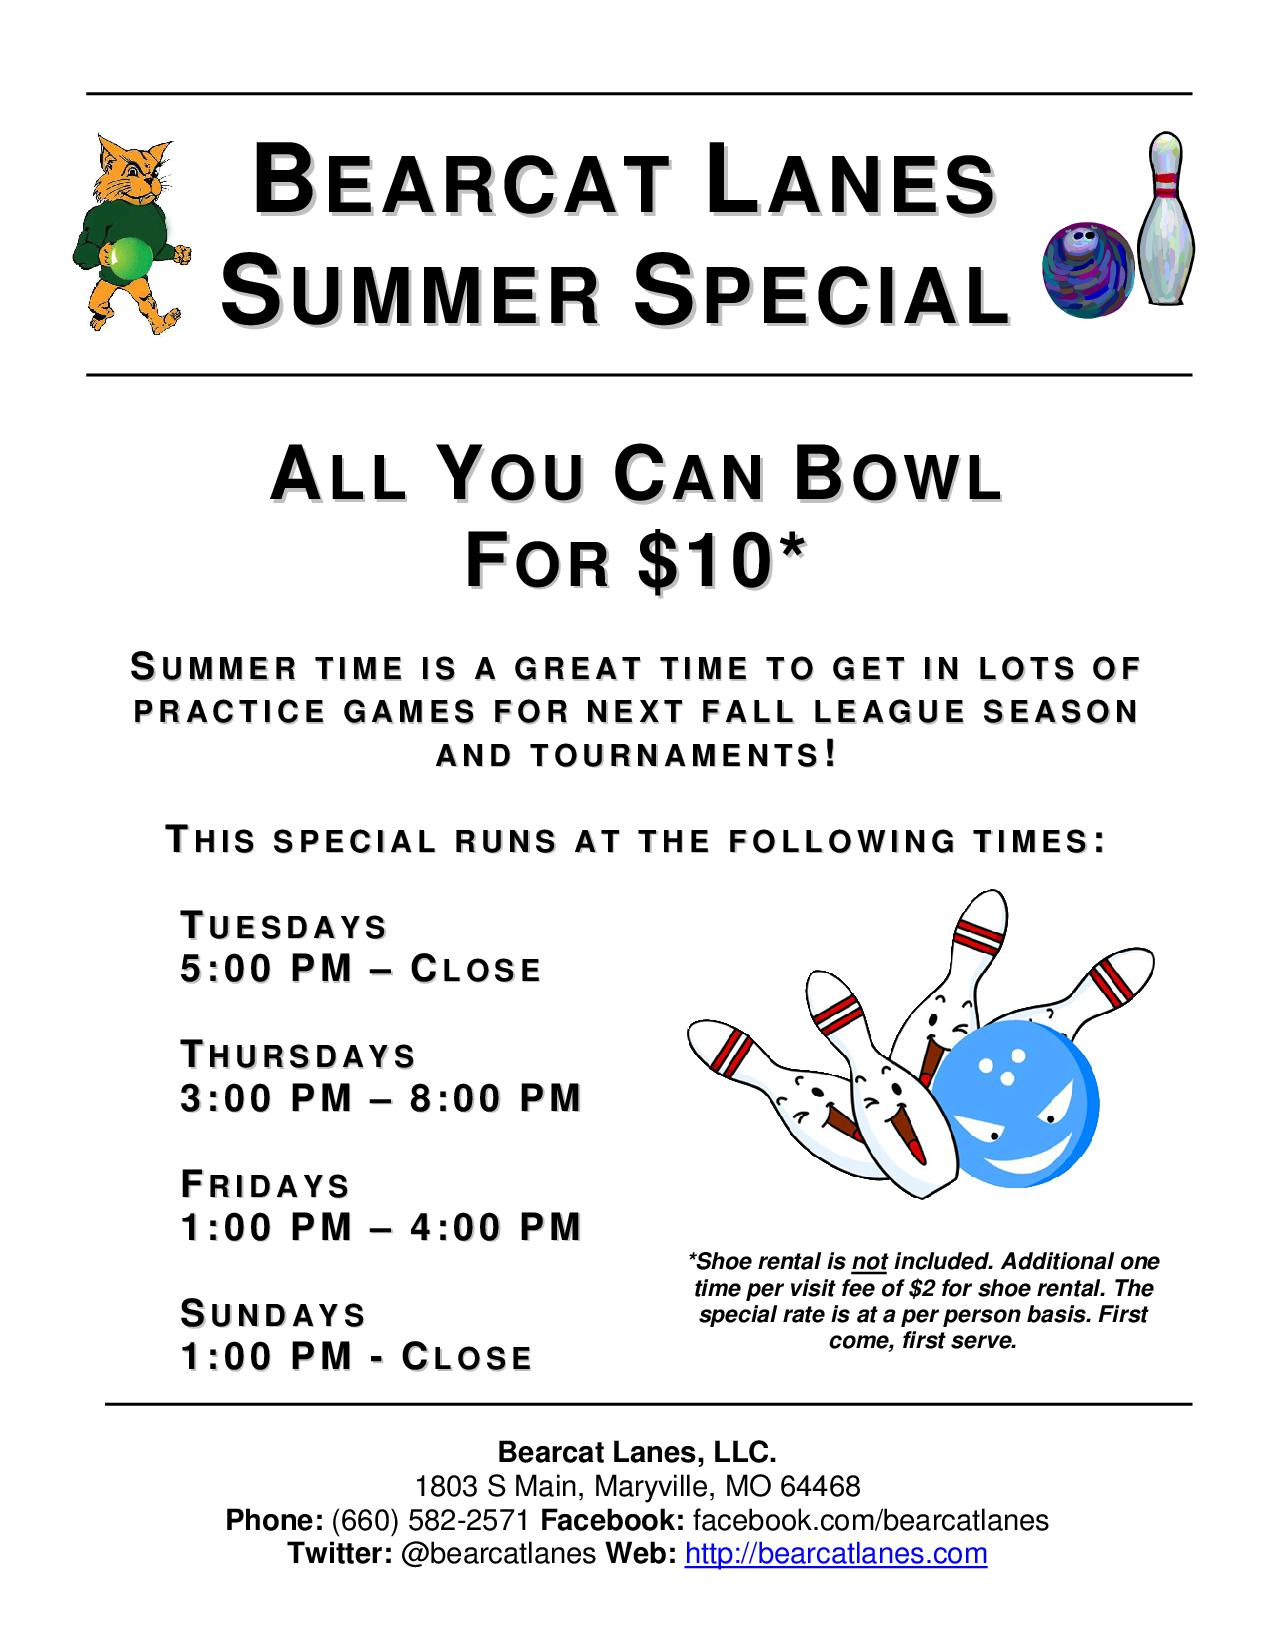 All-You-Can-Bowl